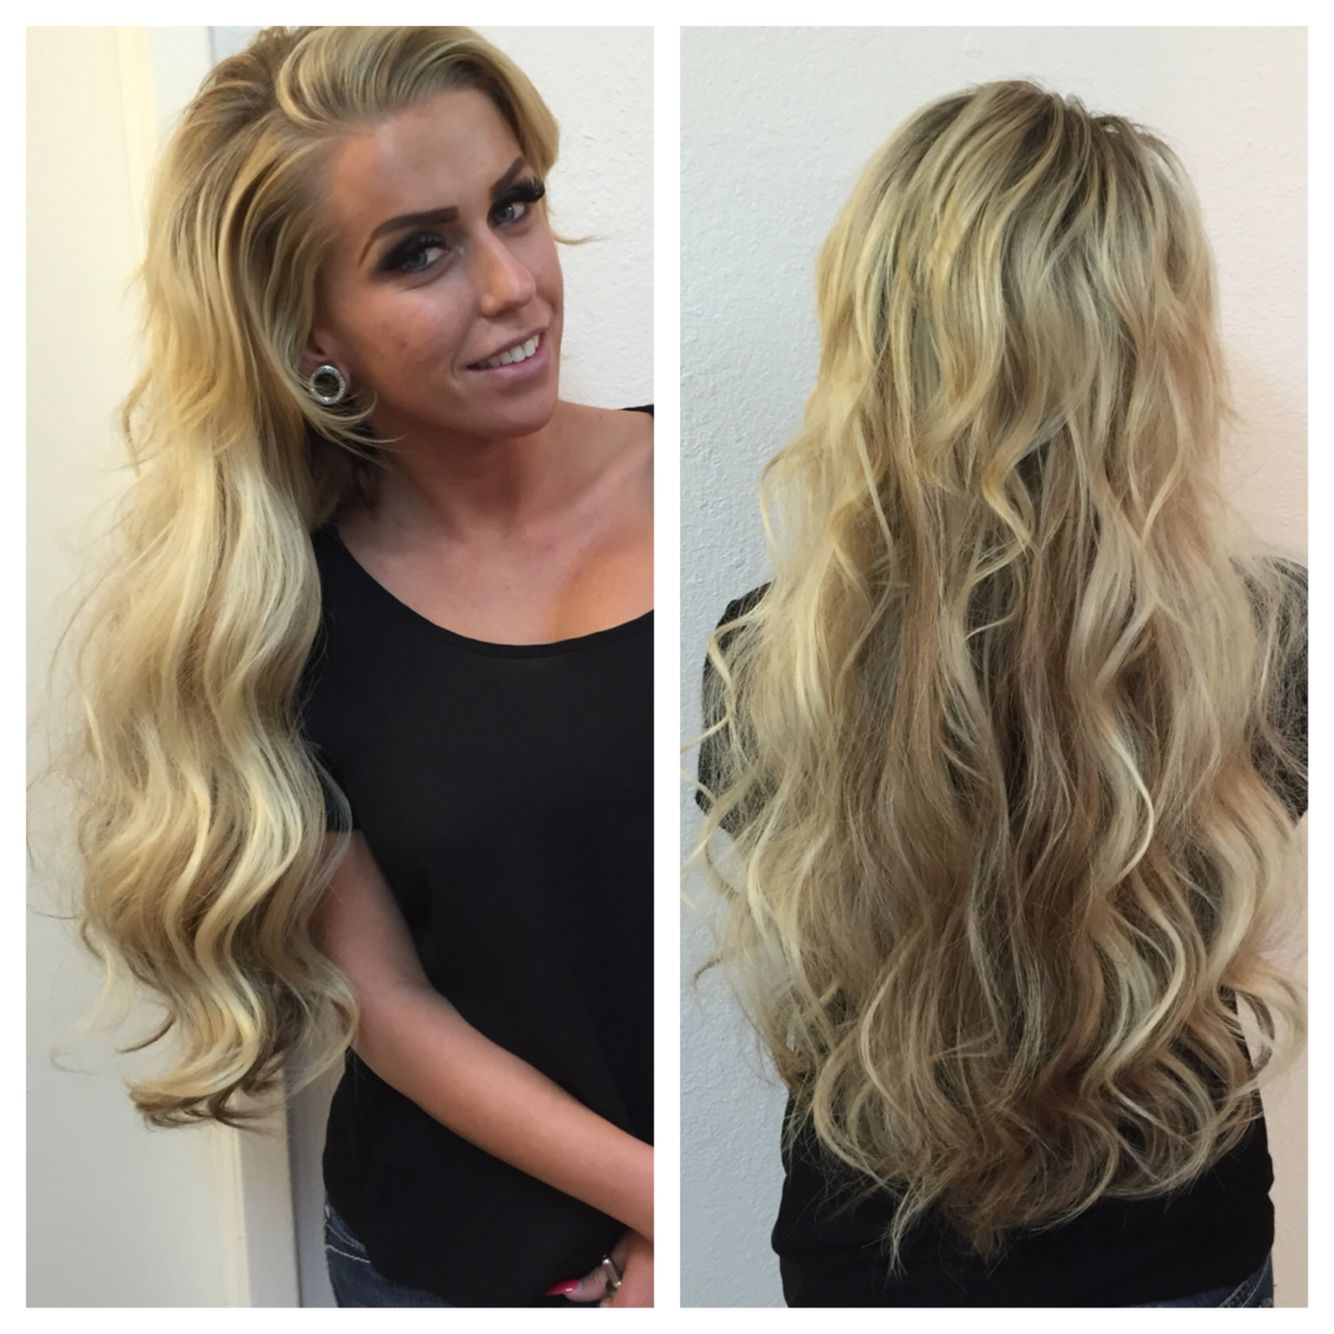 Upgrade to 22 24 hotheads hair extensions hair extensions upgrade to 22 24 hotheads hair extensions pmusecretfo Images